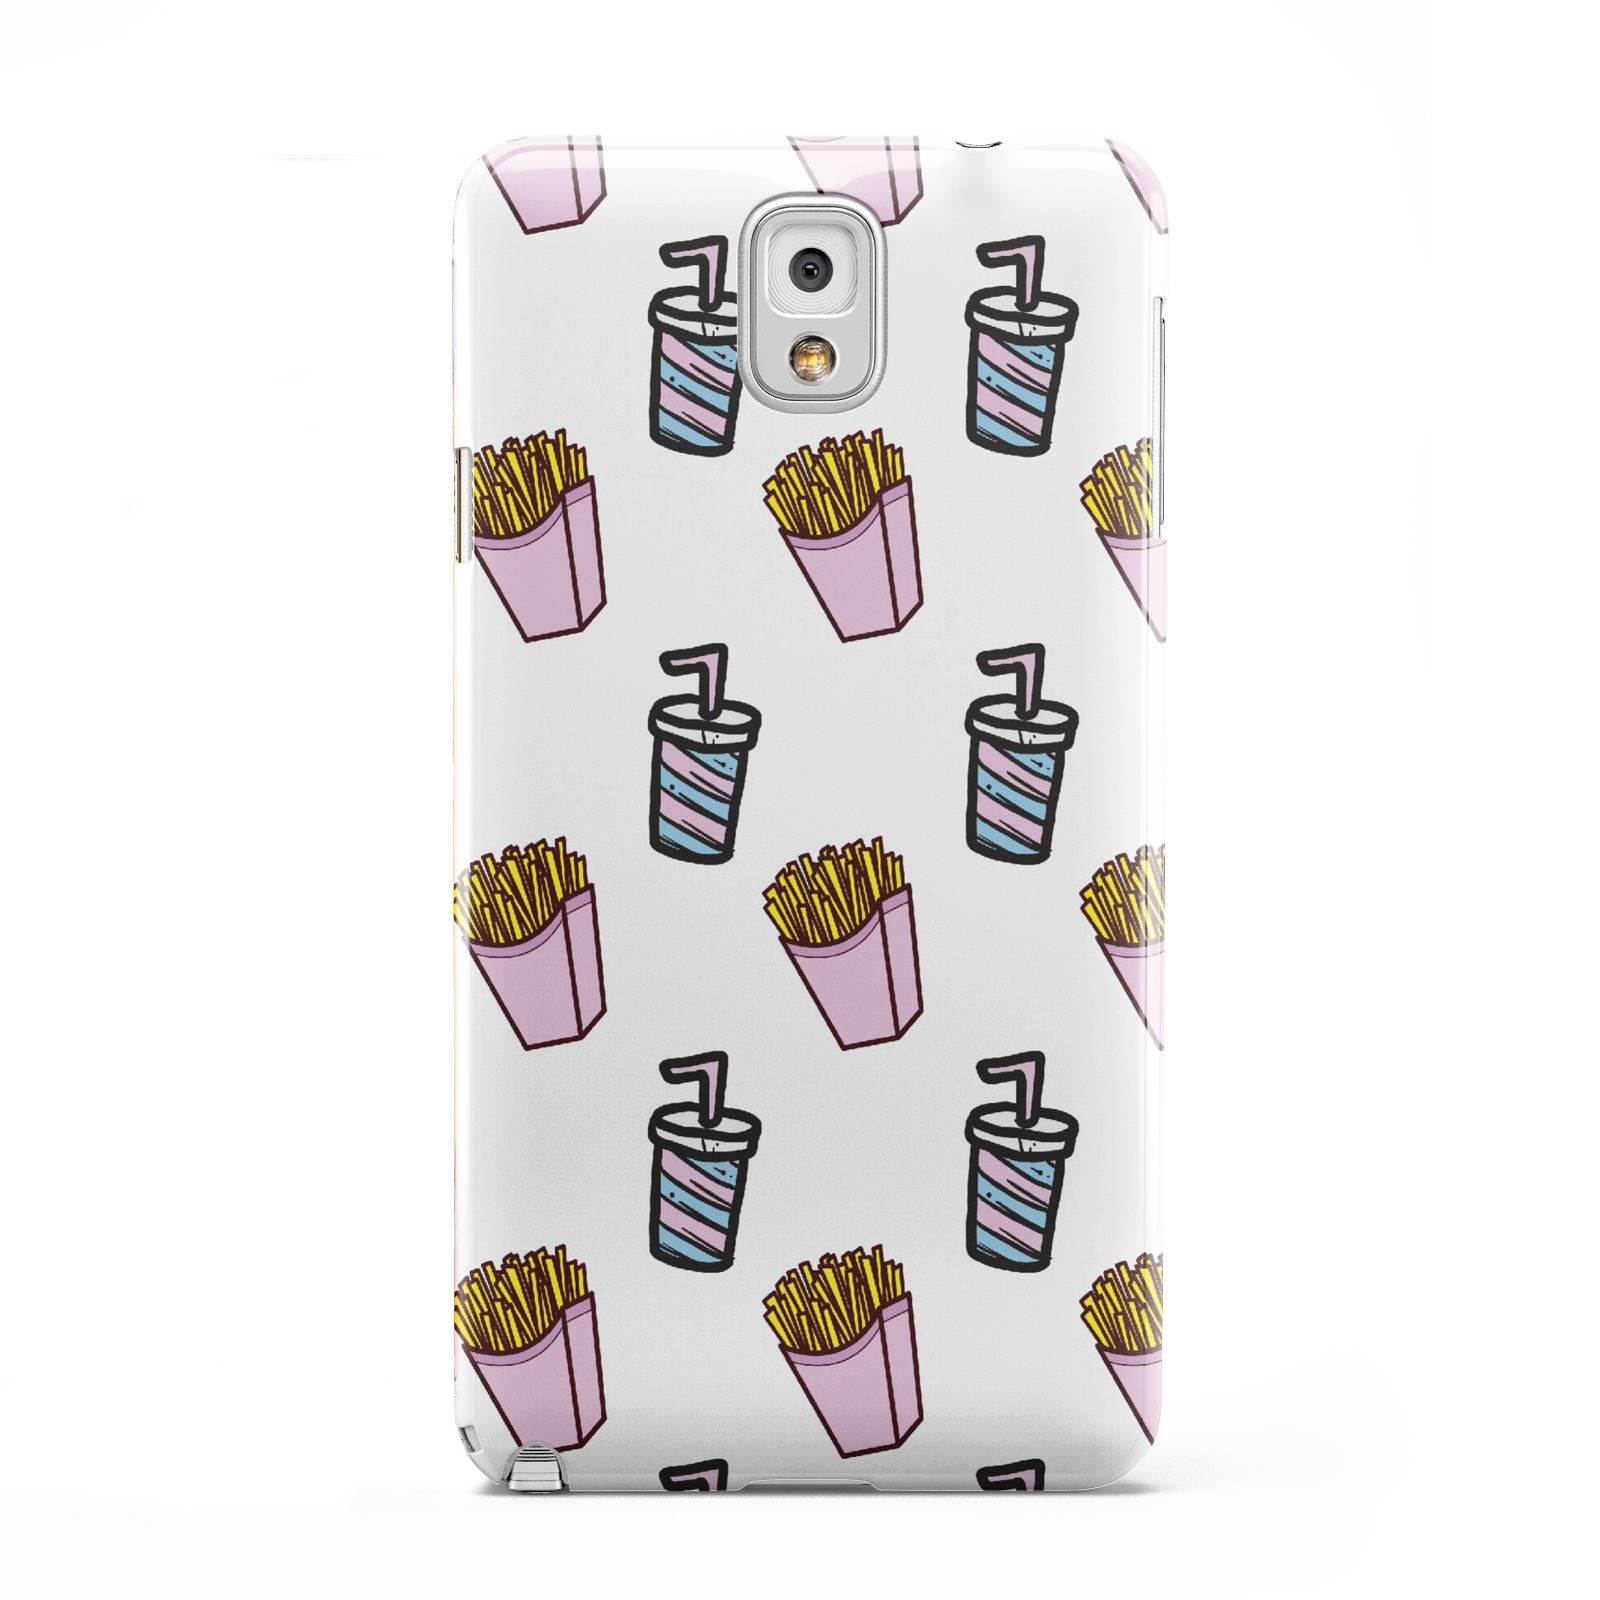 Fries Shake Fast Food Samsung Galaxy Note 3 Case